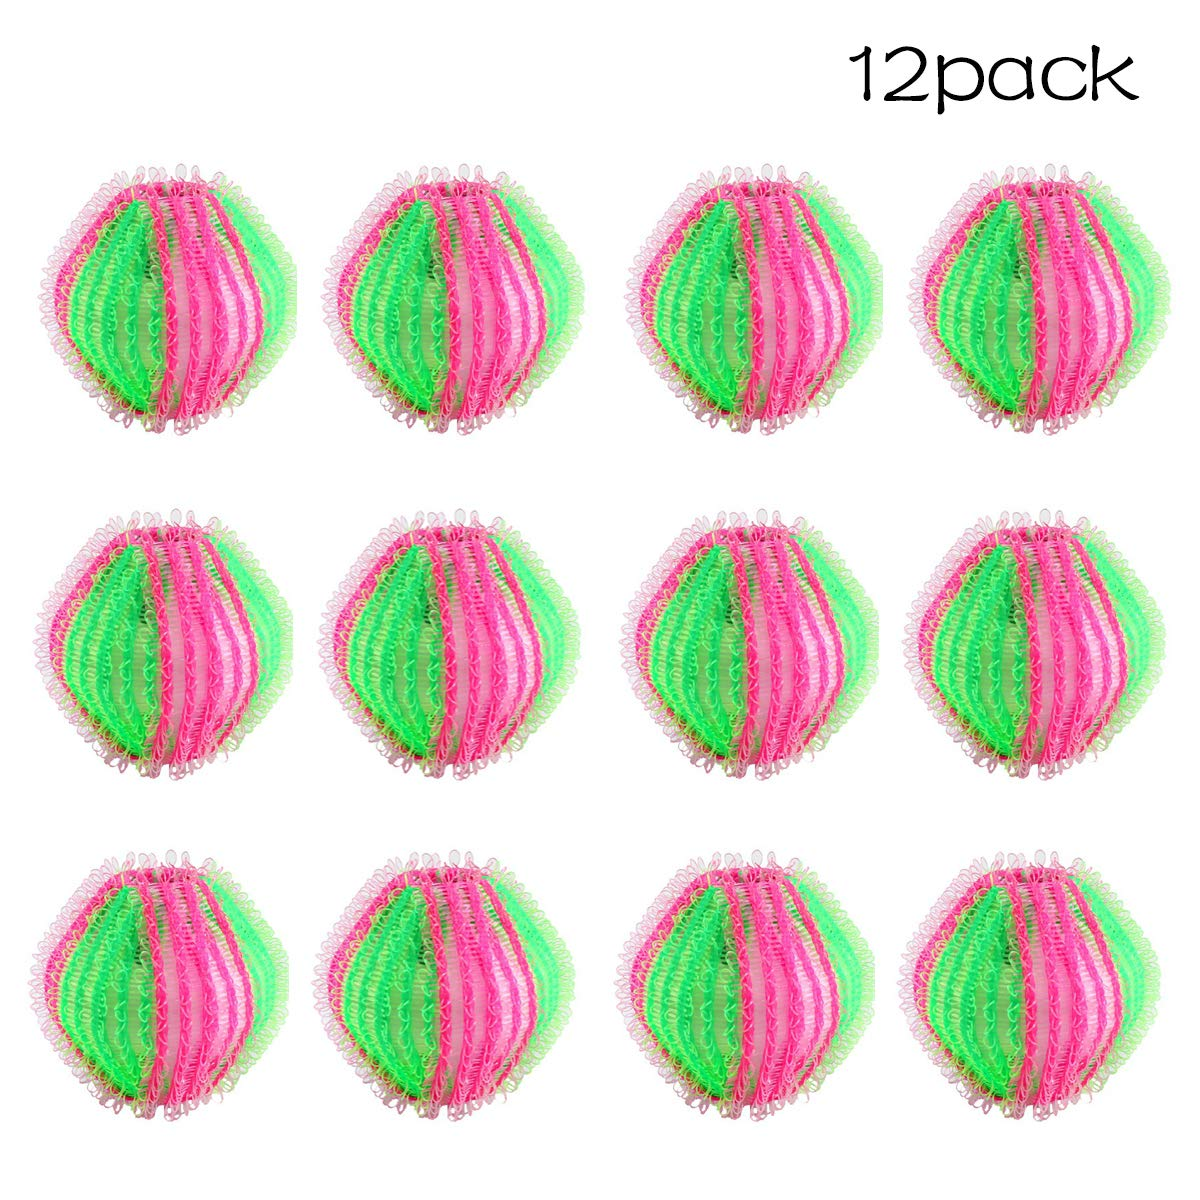 12 Pack Pet Hair Remover Balls for Laundry Reusable Lint Remover Balls Dryer Balls Hair Catcher for Washing Machine